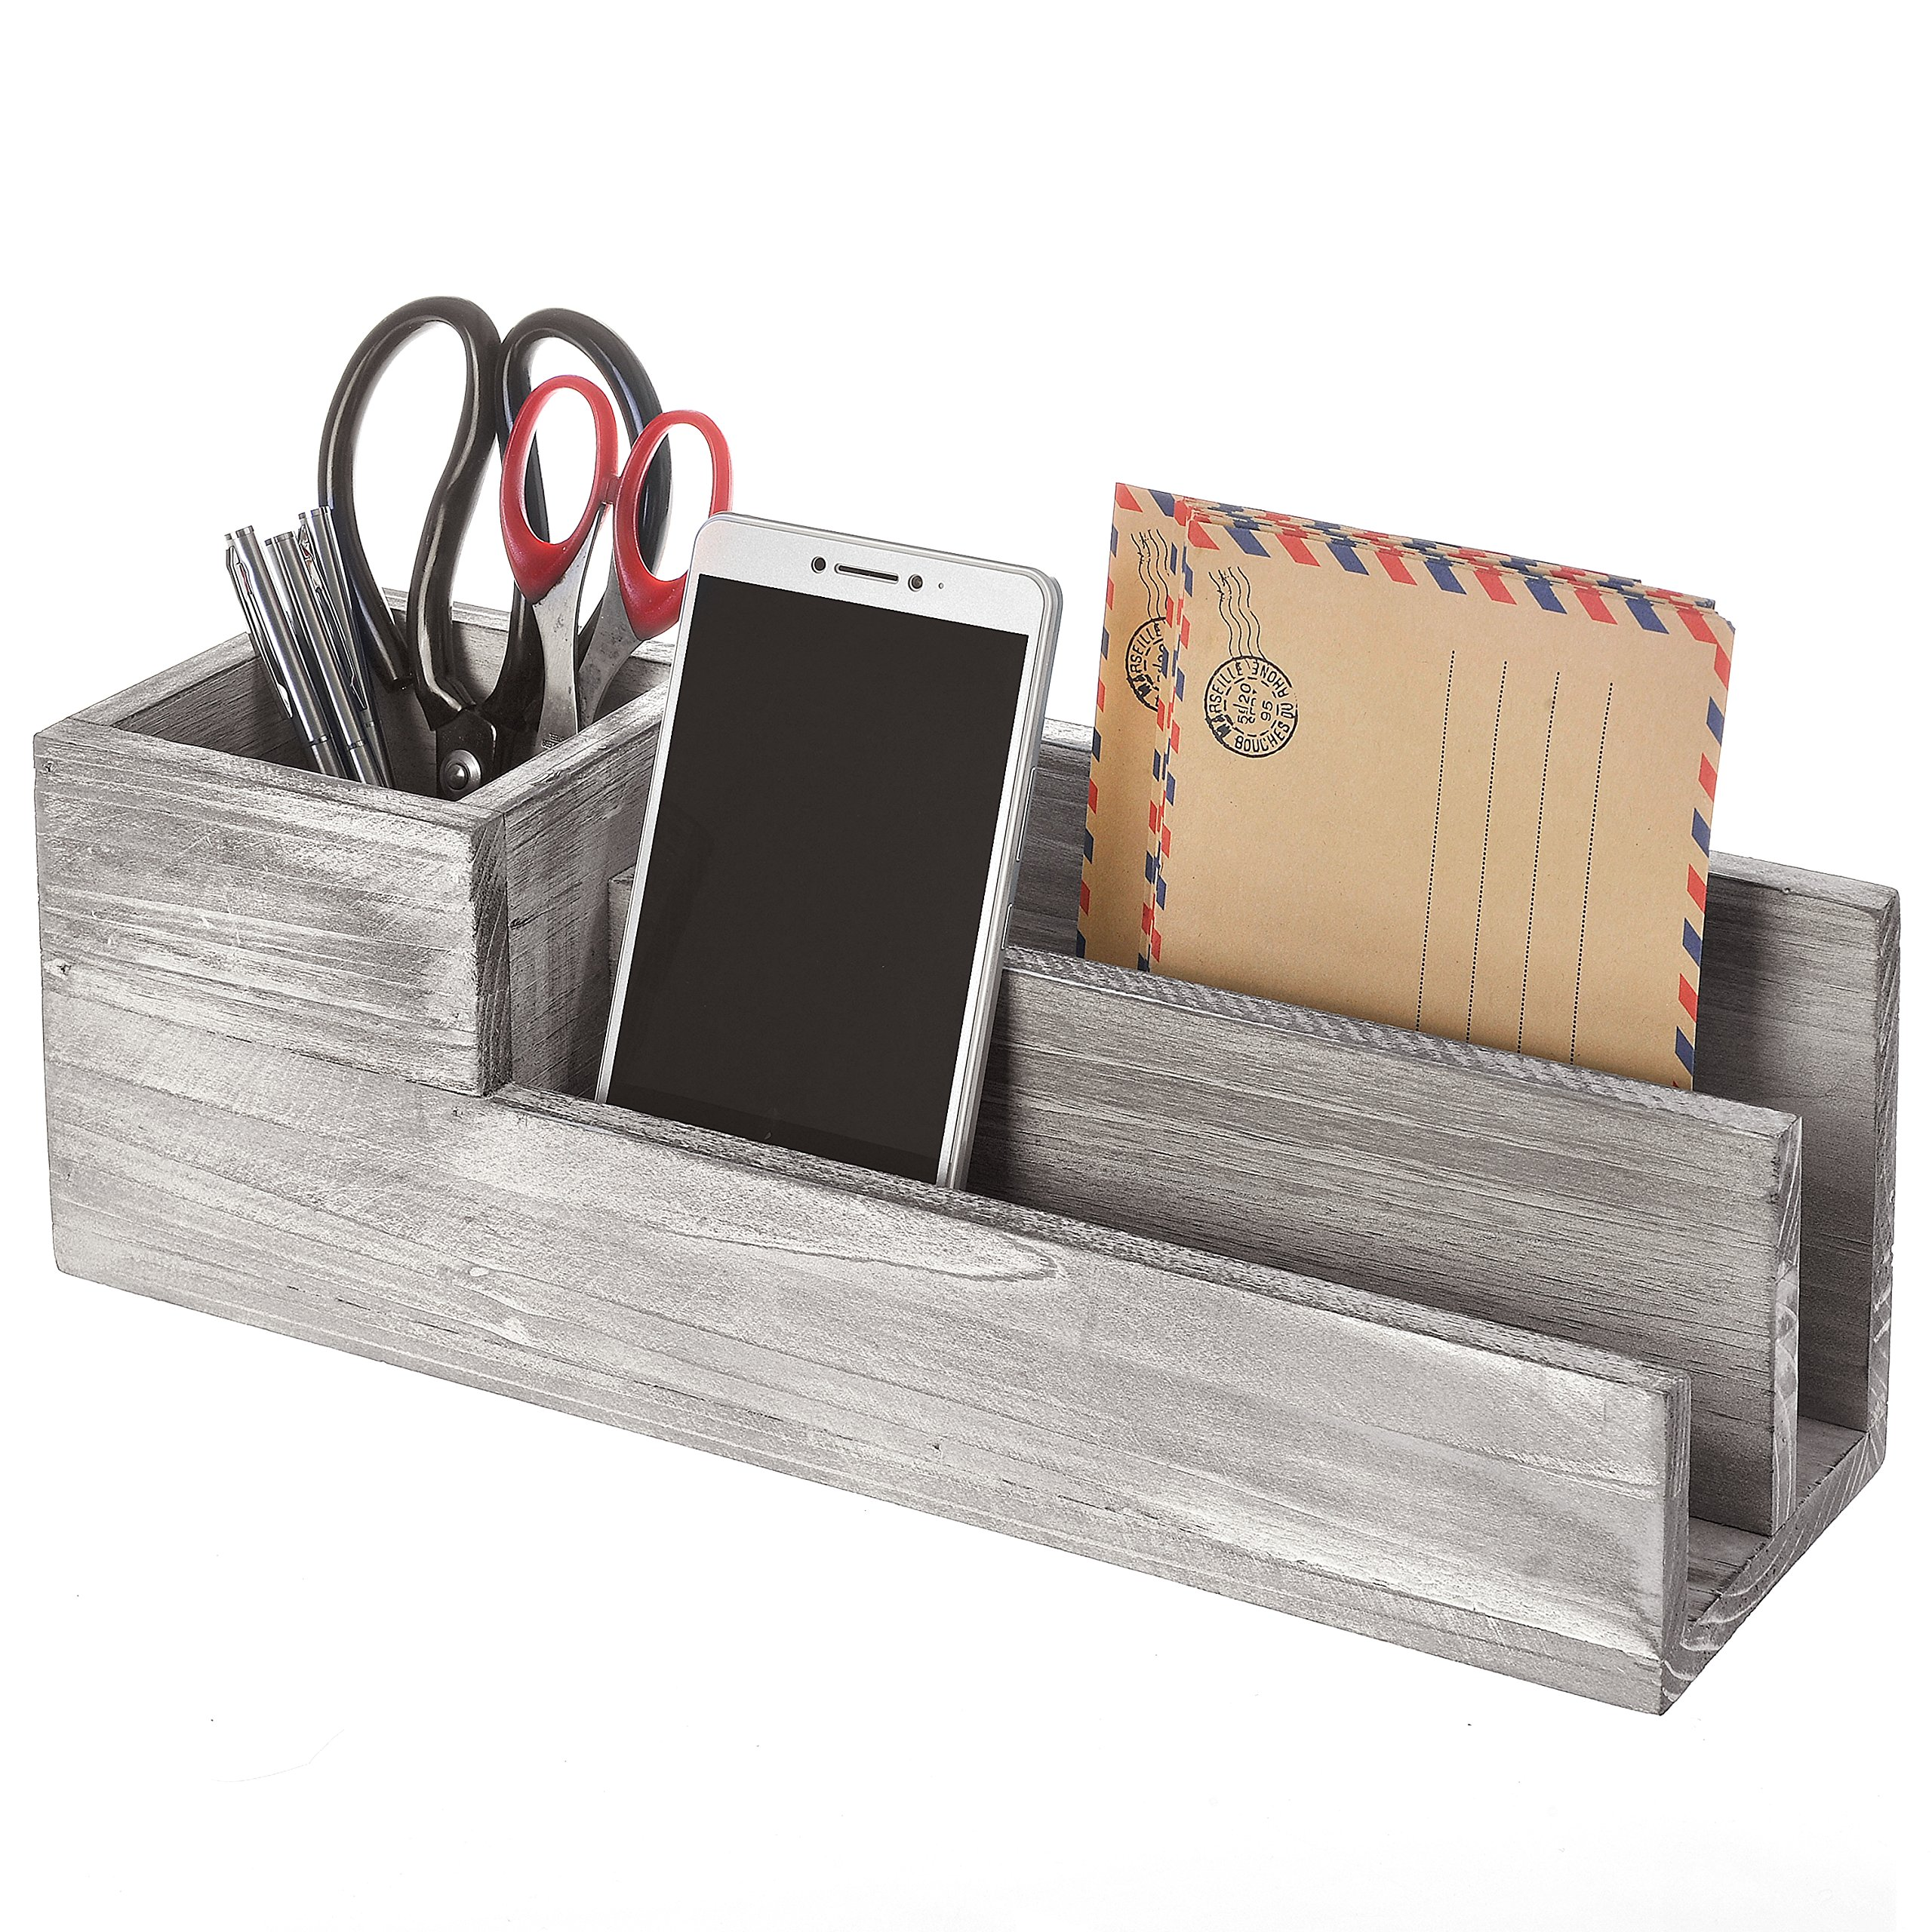 Rustic Whitewashed Gray Wood Desktop Office Supplies Caddy & 2 Slot Letter Mail Sorter Organizer, Brown